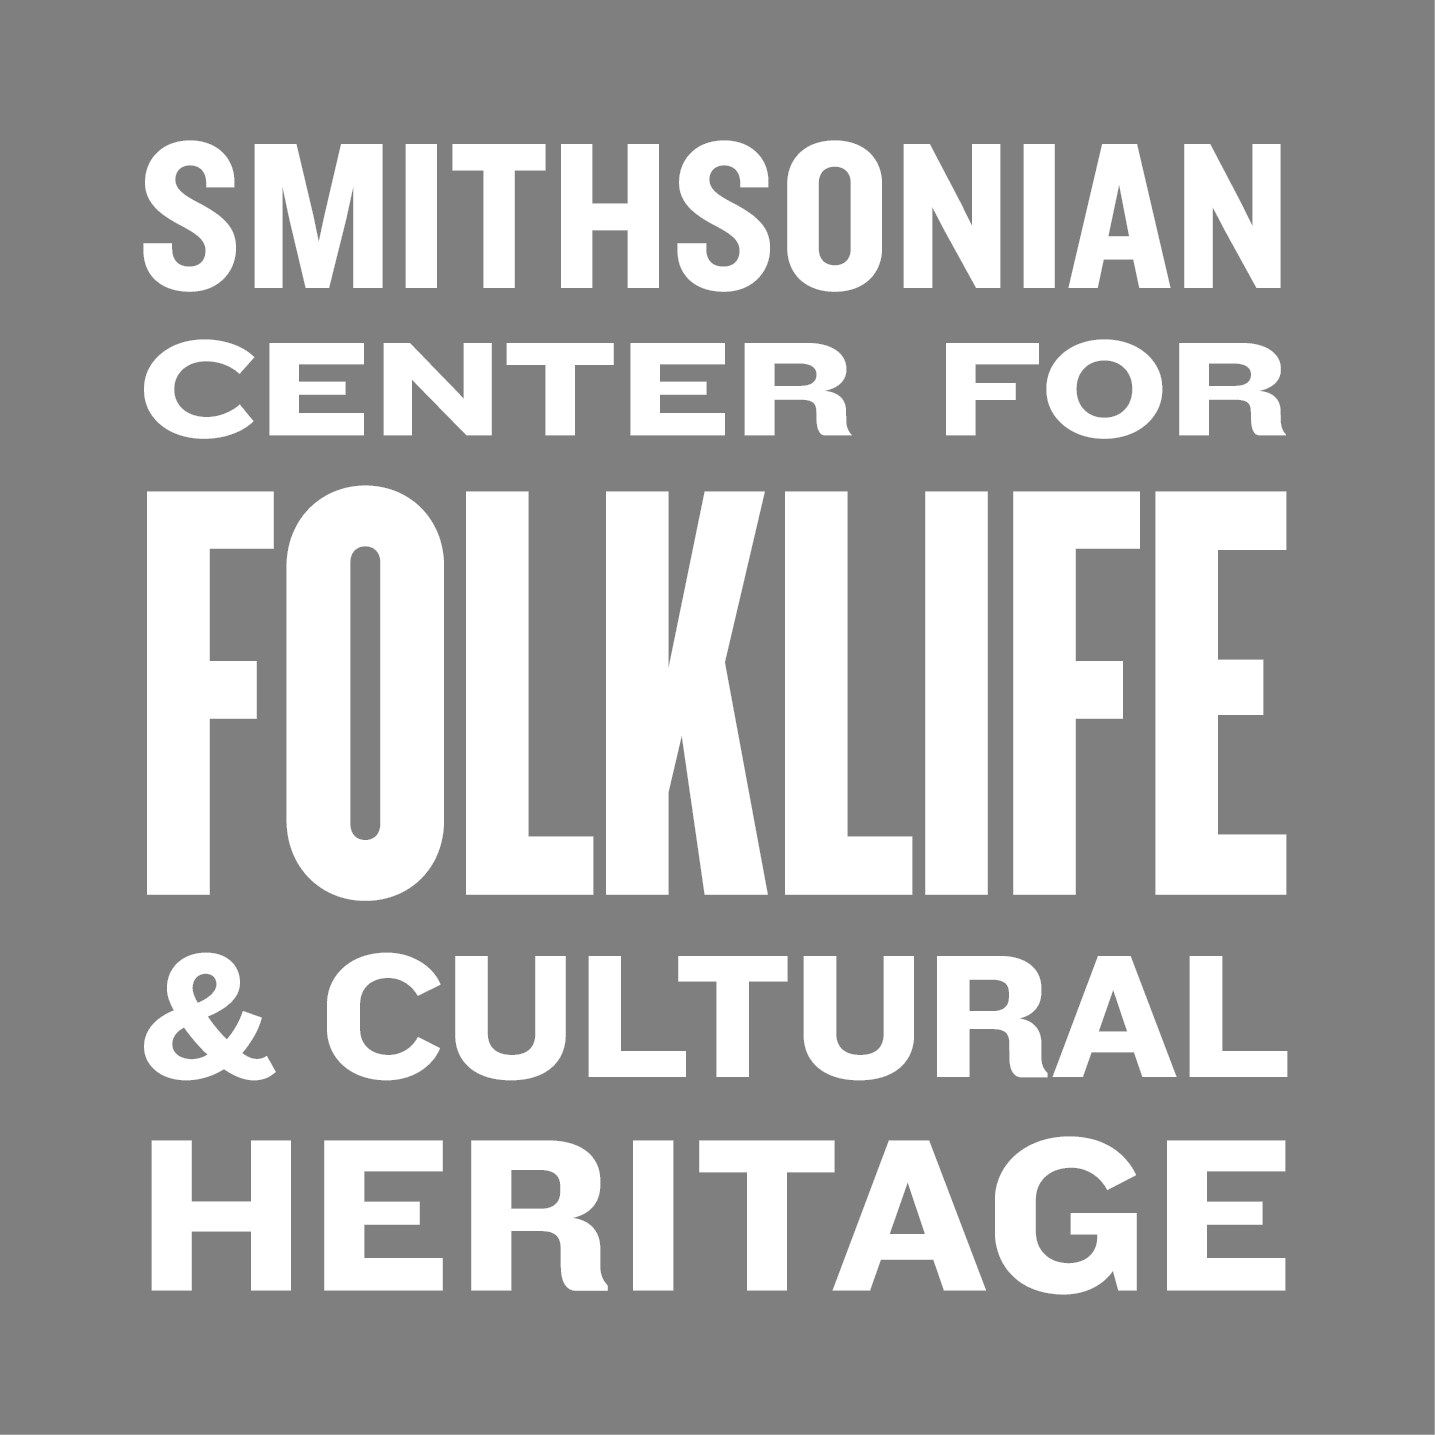 Smithsonian Center for Folk Life & Cultural Heritage logo